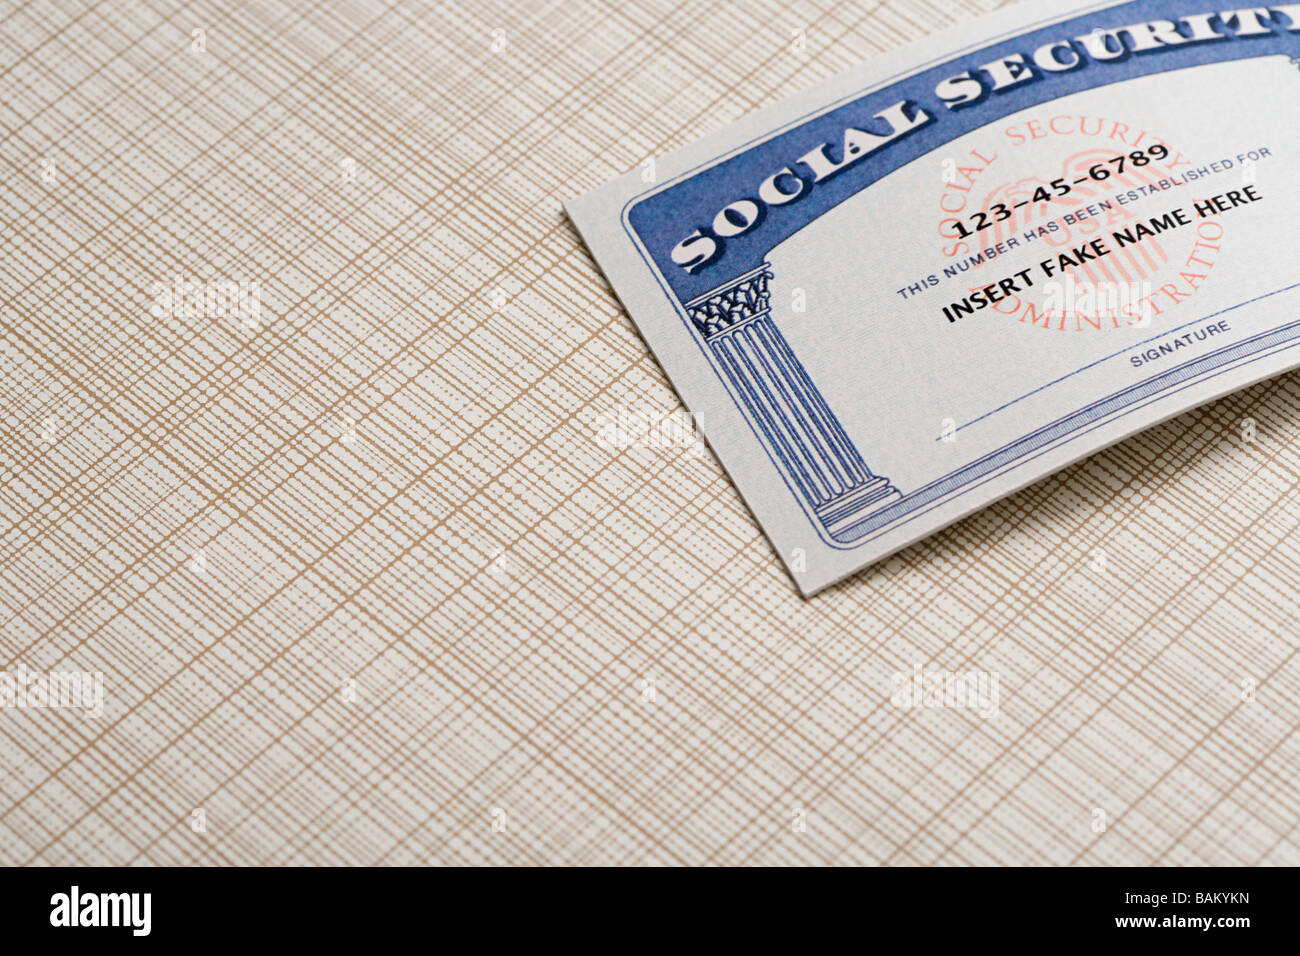 Fake Social Security Card Bakykn